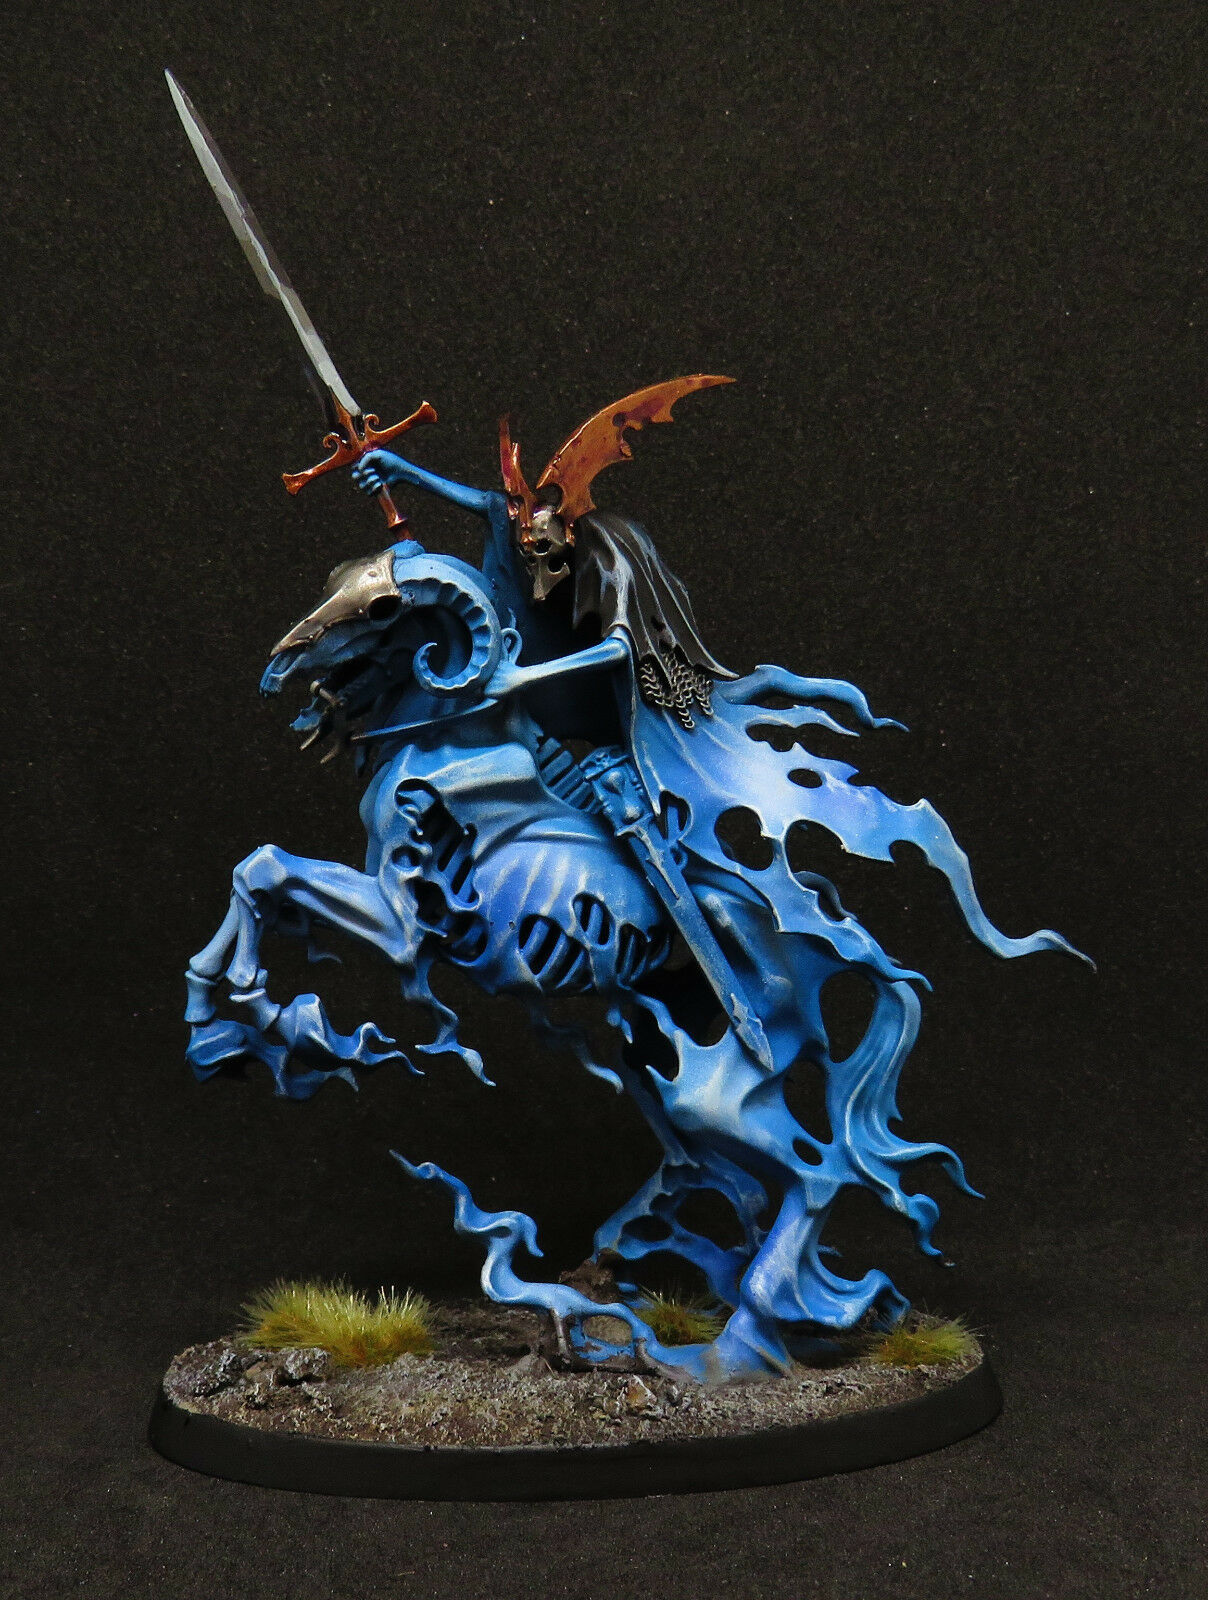 Warhammer Age of Sigmar Pro Painted Nighthaunt Knight of Shrouds on Ethereal Ste